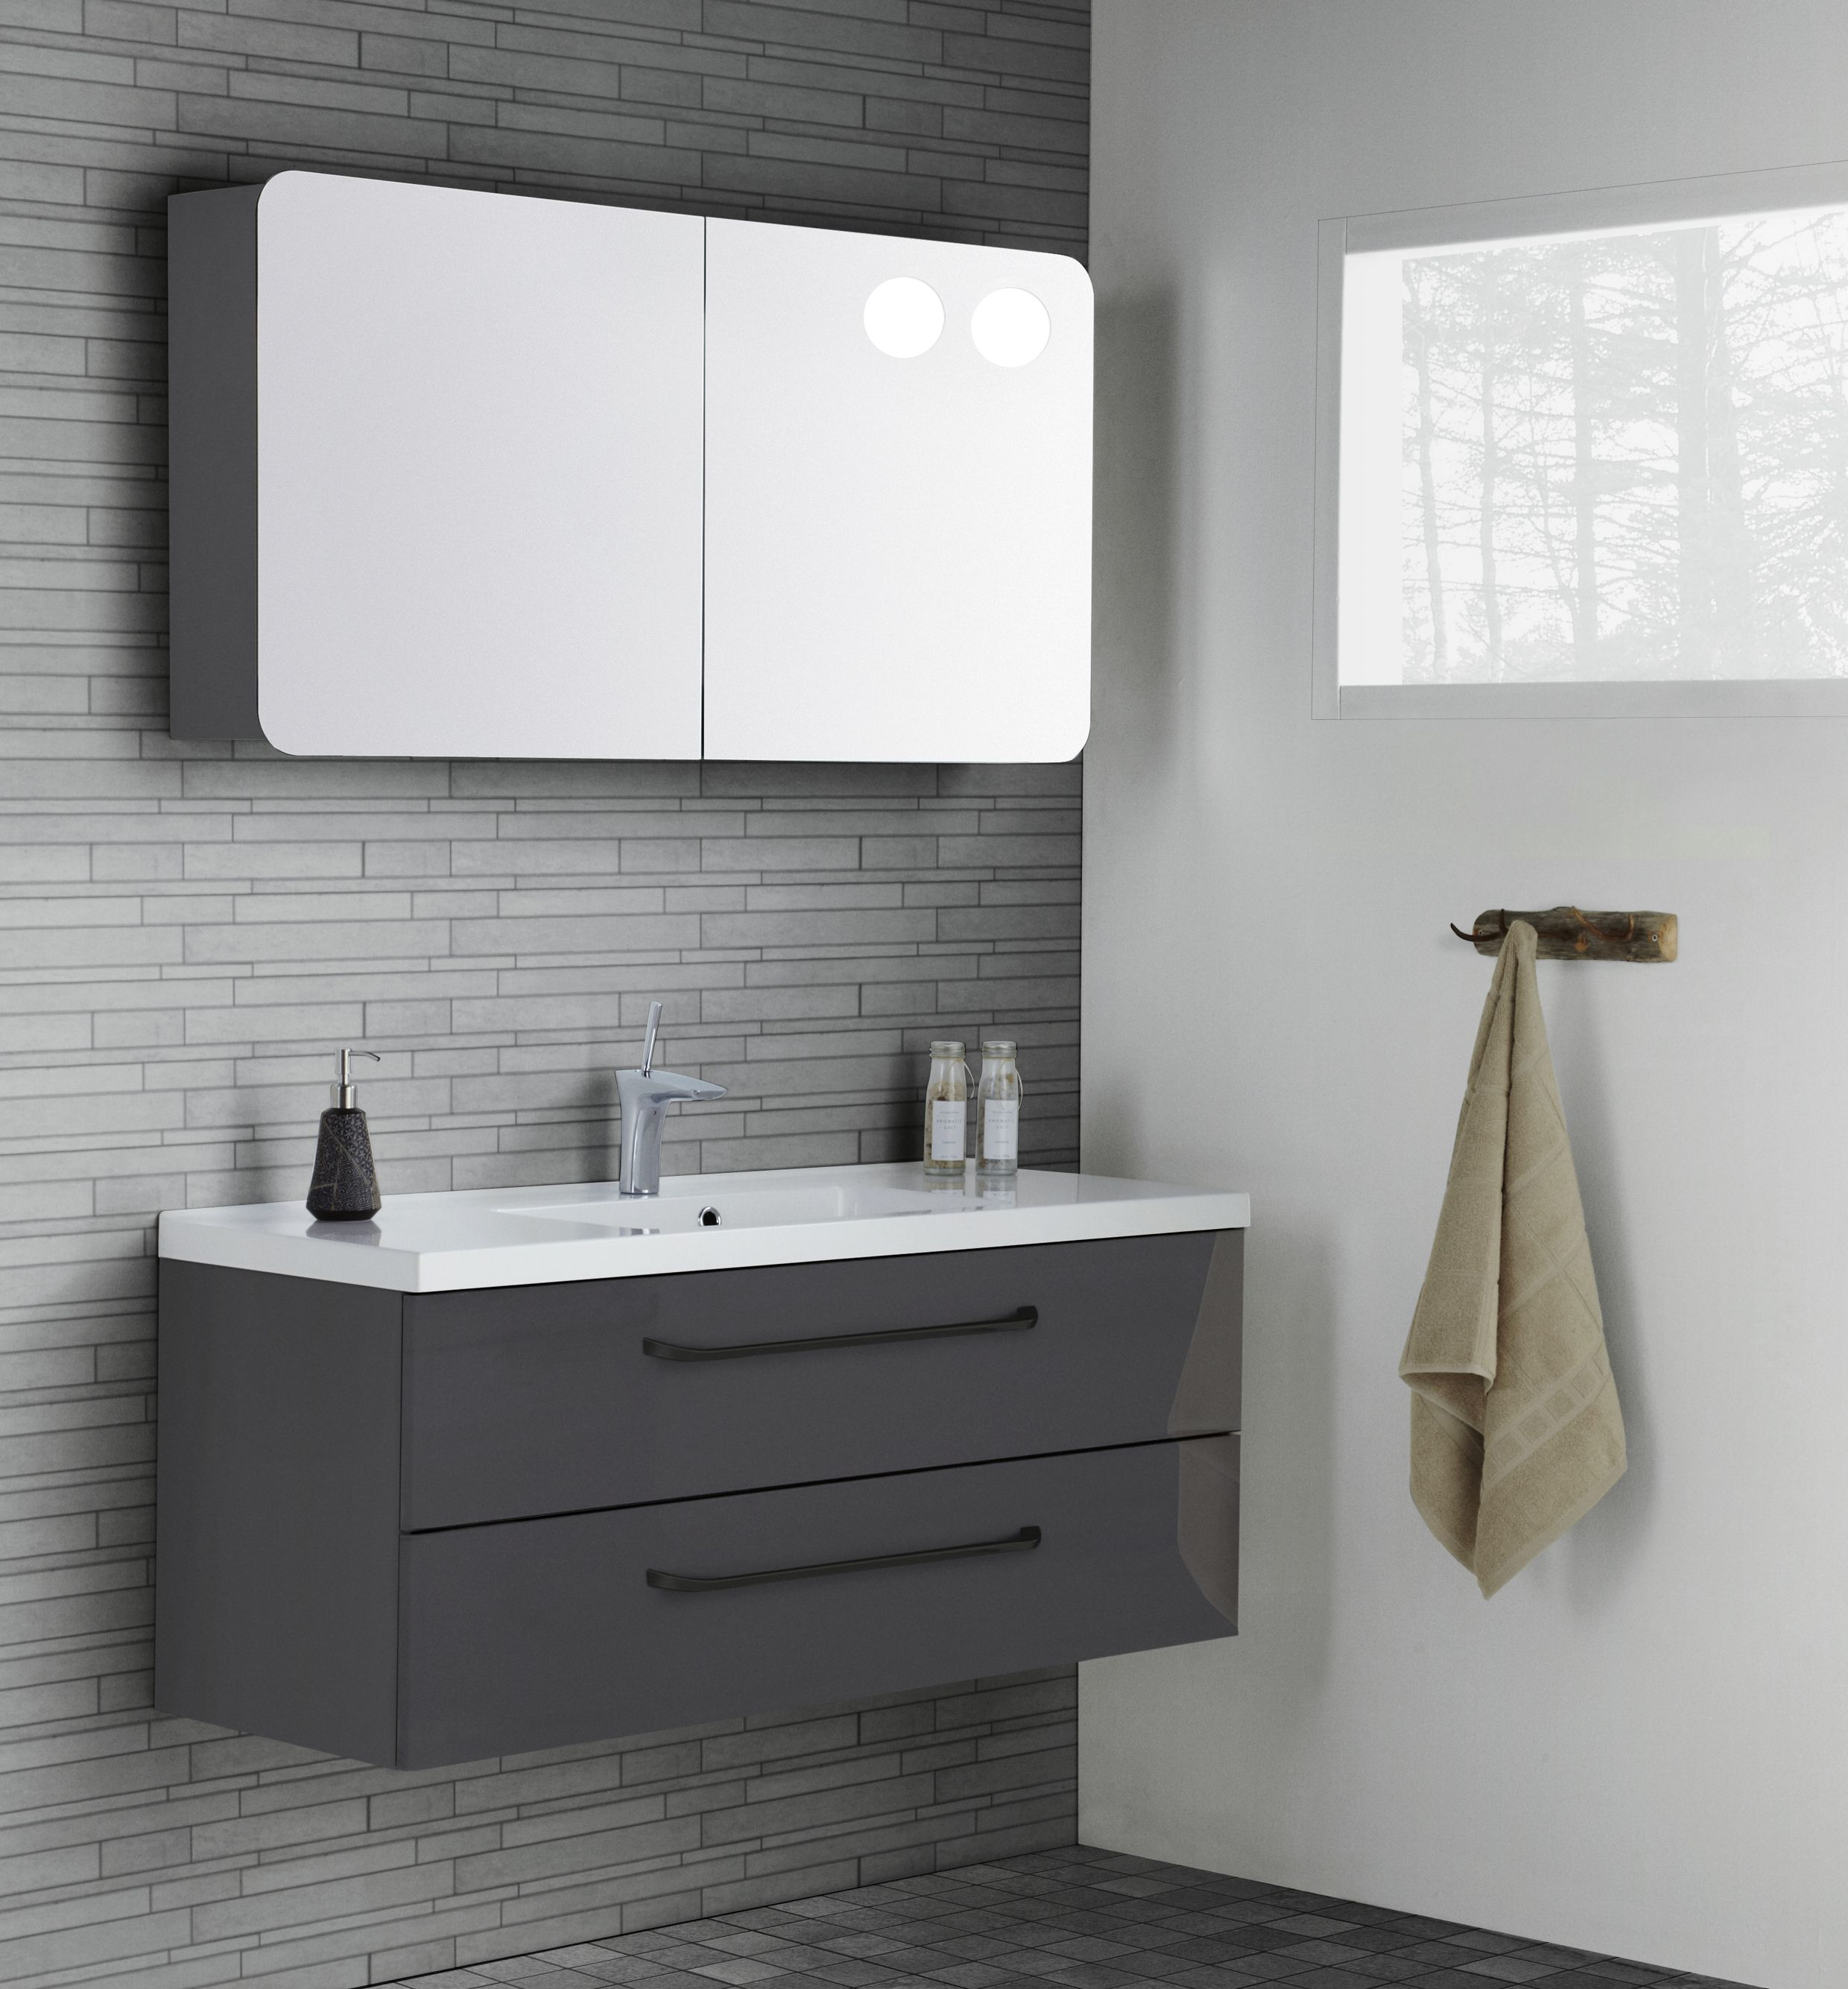 Bathroom Cabinets Black Gloss mirror cabinet wonderful bathroom black design in mirrored modern